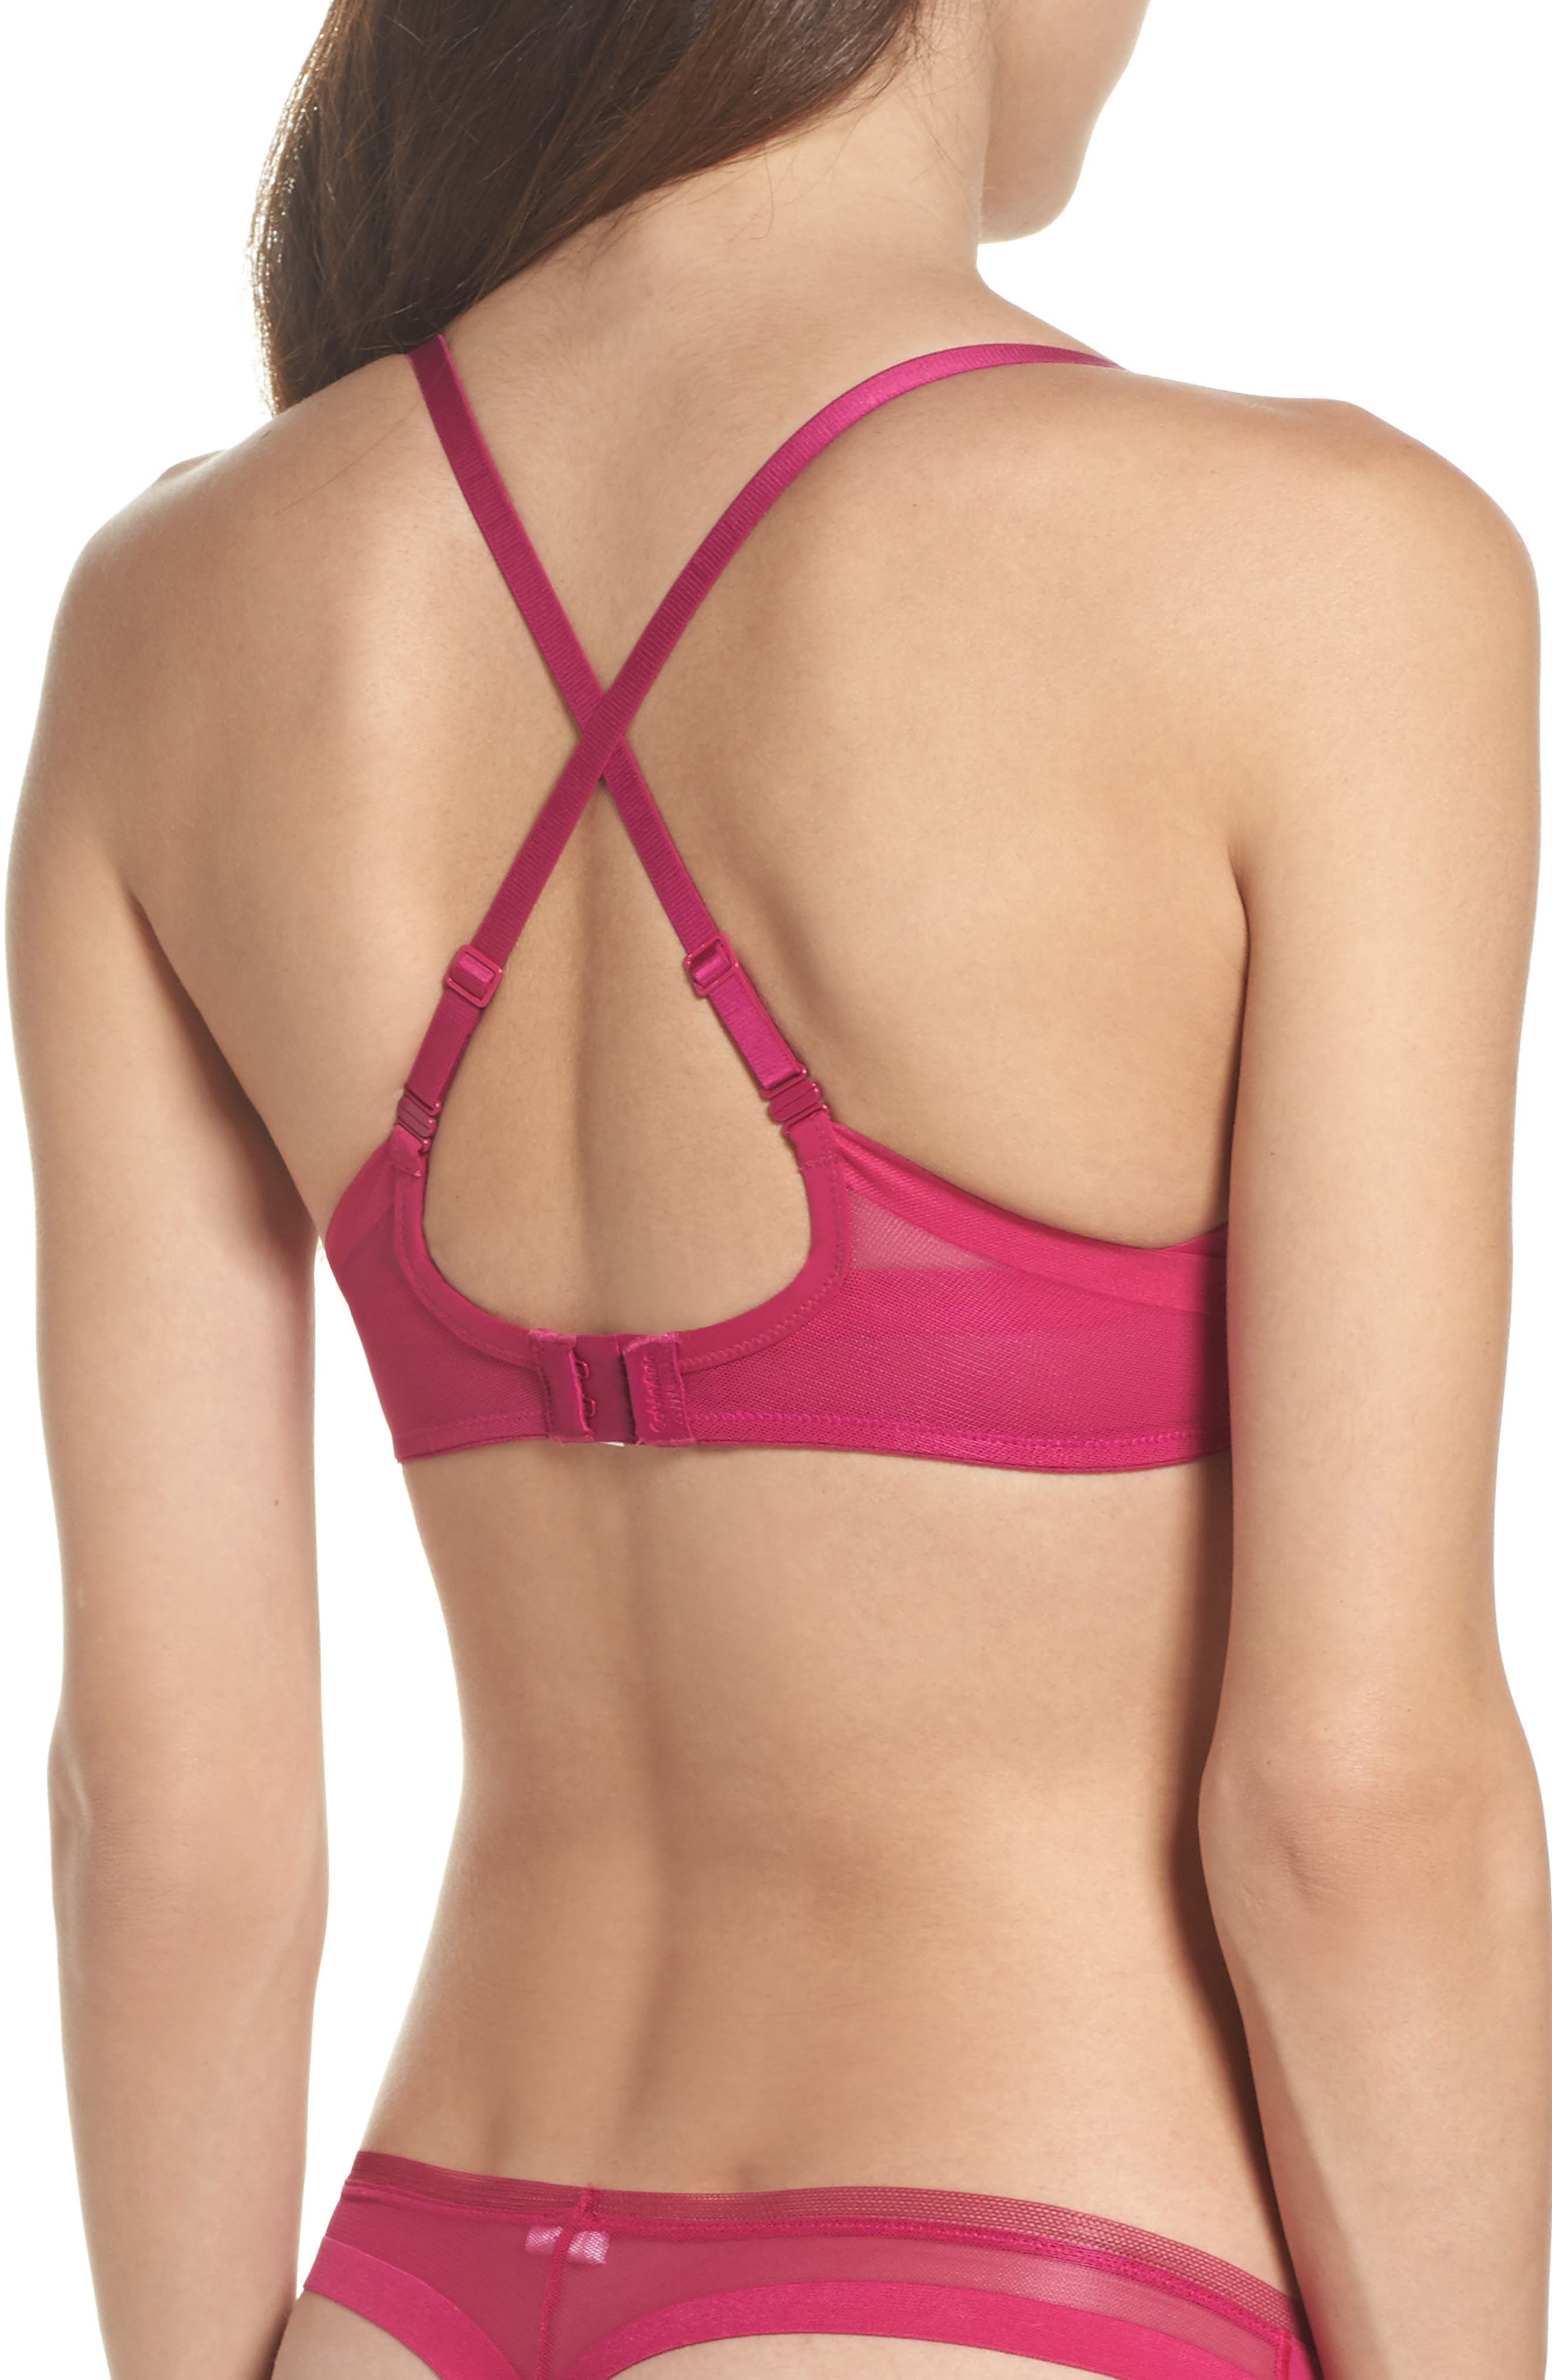 Sculpted Underwire Plunge Push-Up Bra,                             Alternate thumbnail 3, color,                             658